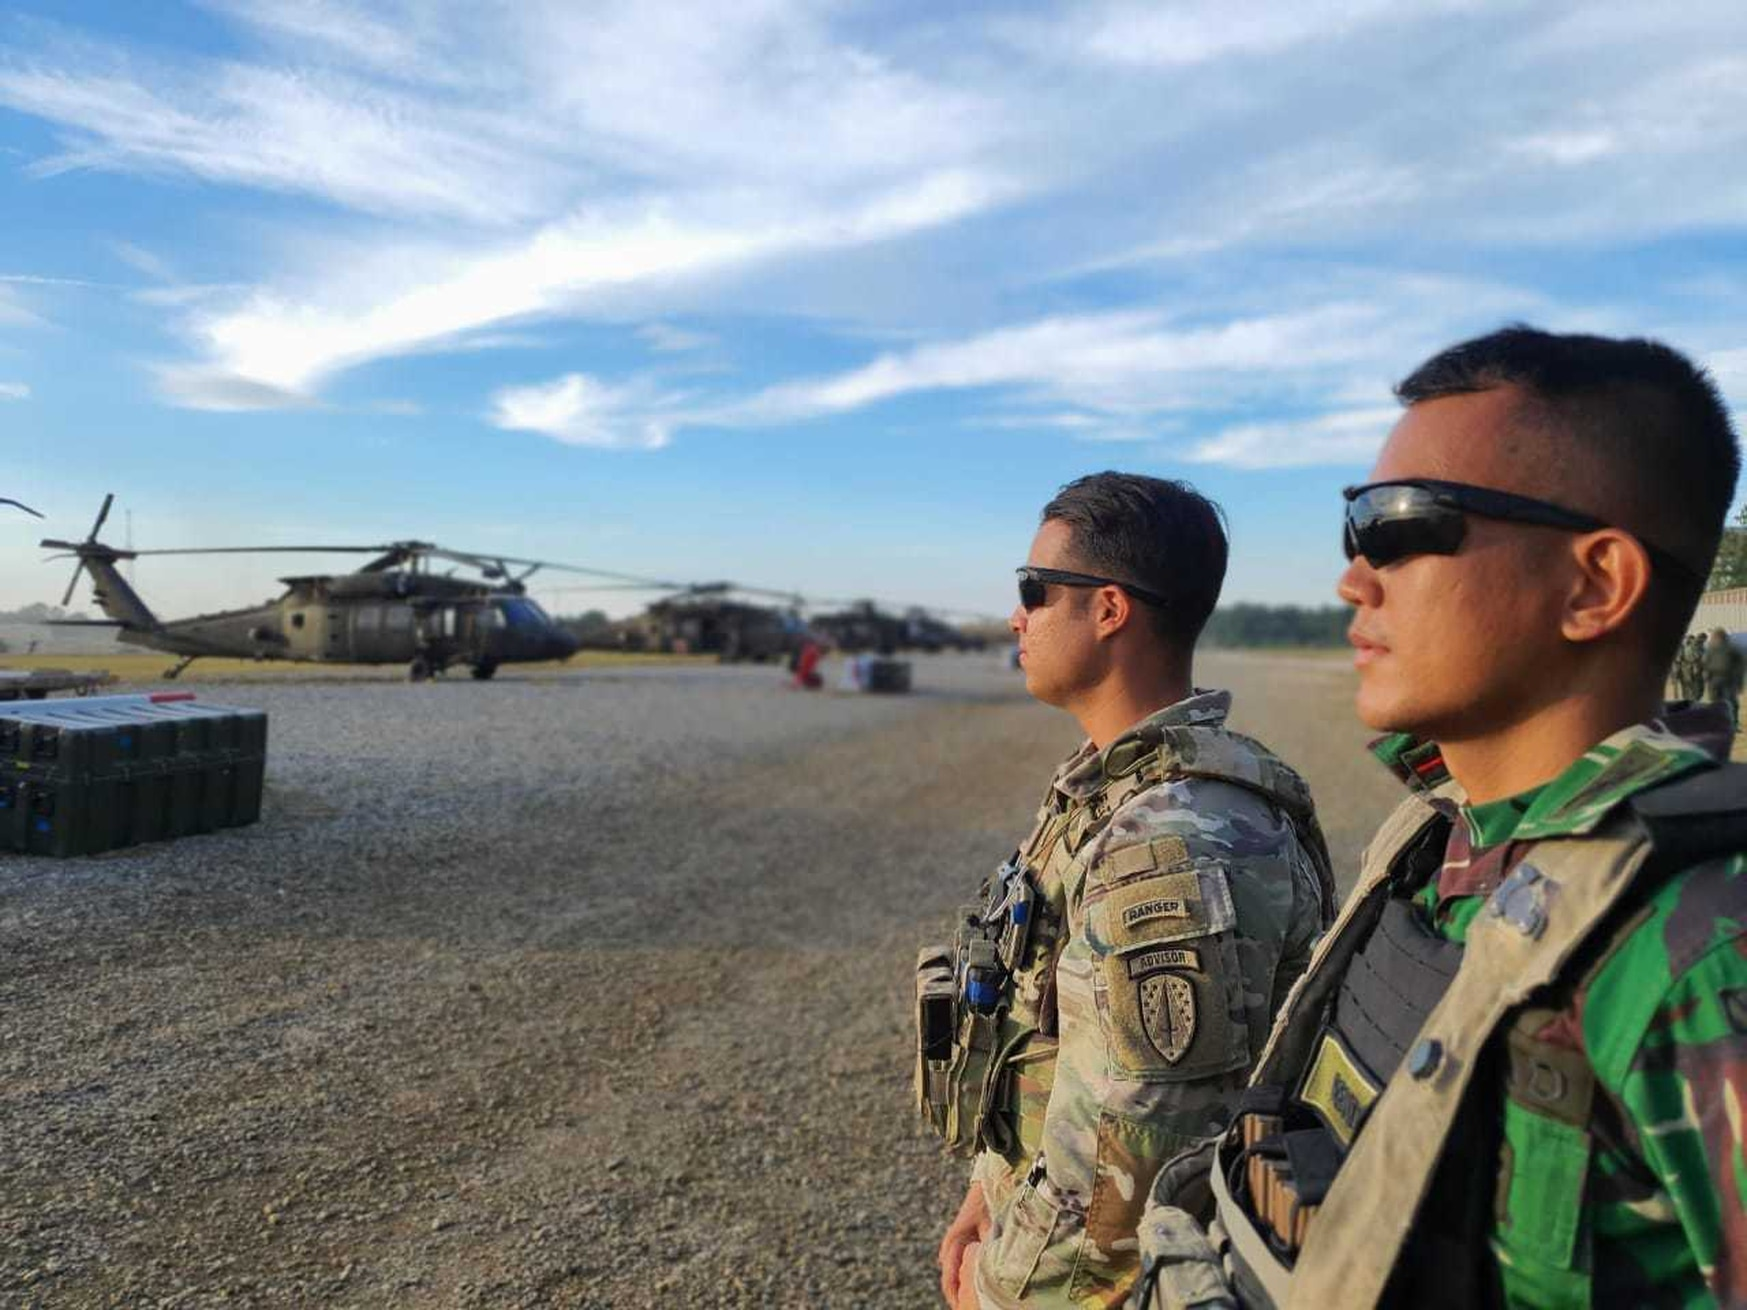 A 5th SFAB team leader, Capt. Kris Candelaria, stands alongside 1st Lt. Rendi Hardika Putera from the Indonesian Army as they prepare for an air movement at Fort Polk, La. (U.S. Army)